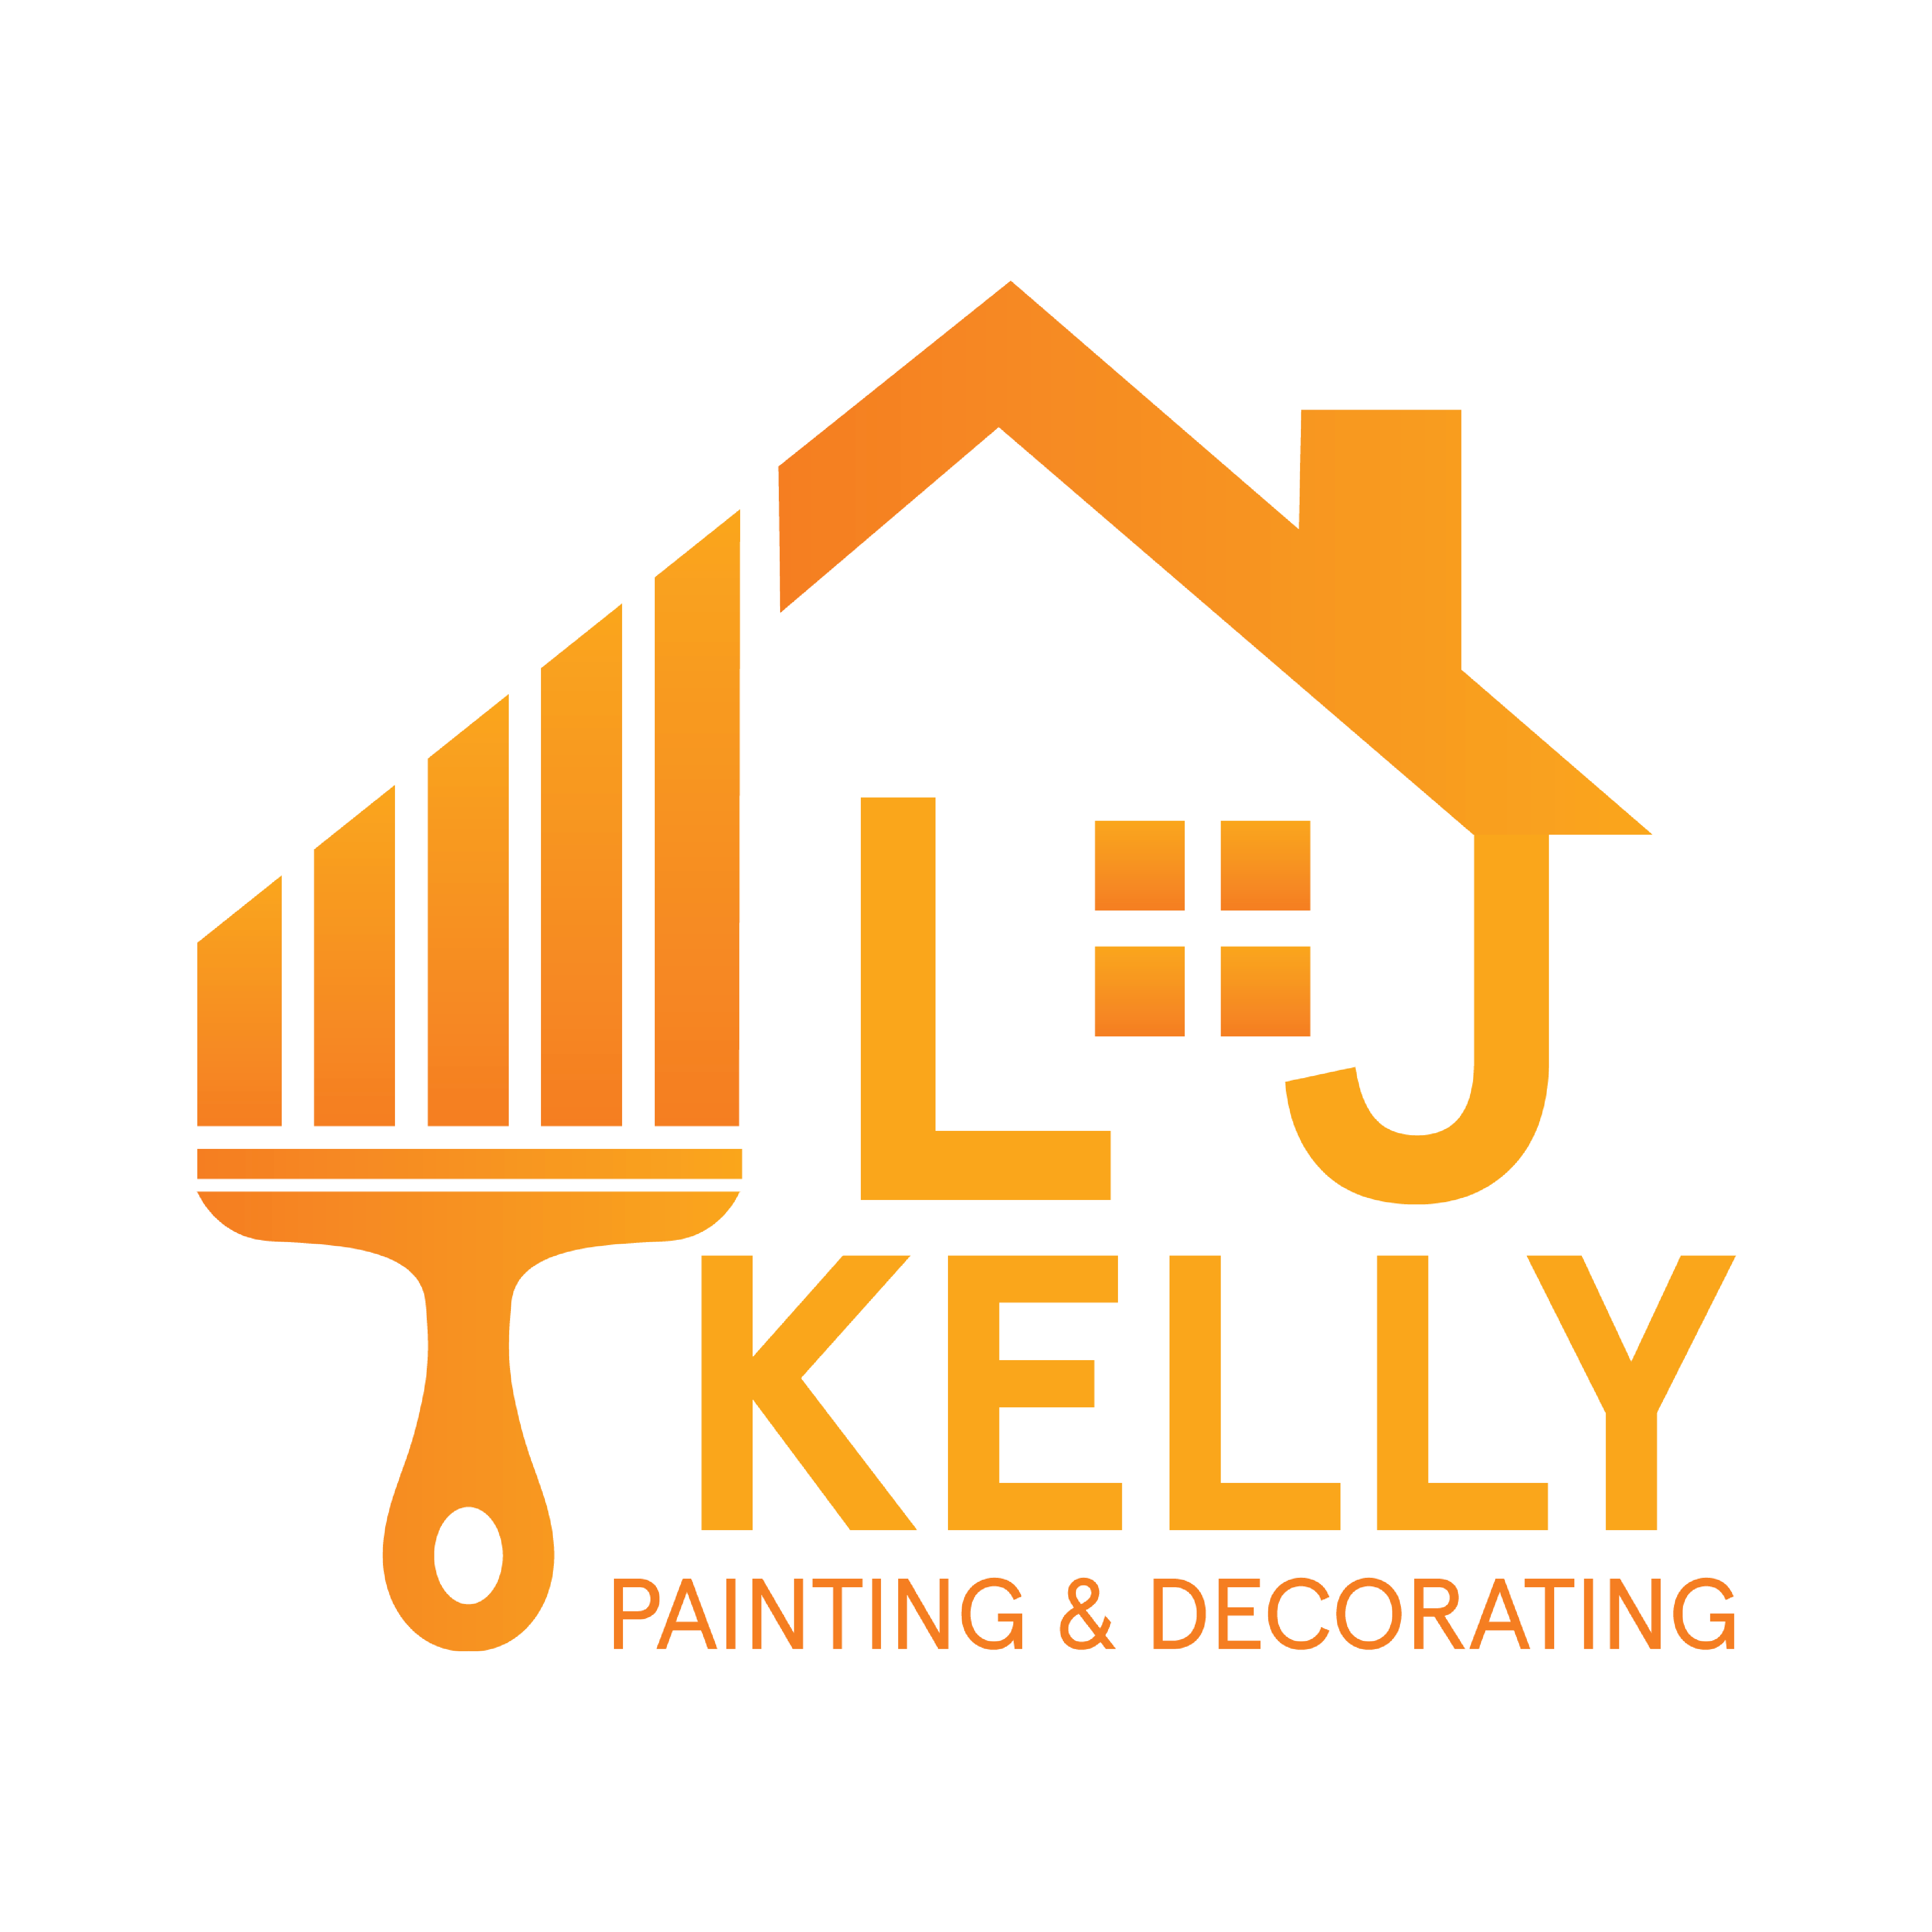 L. J Painting and Decorating